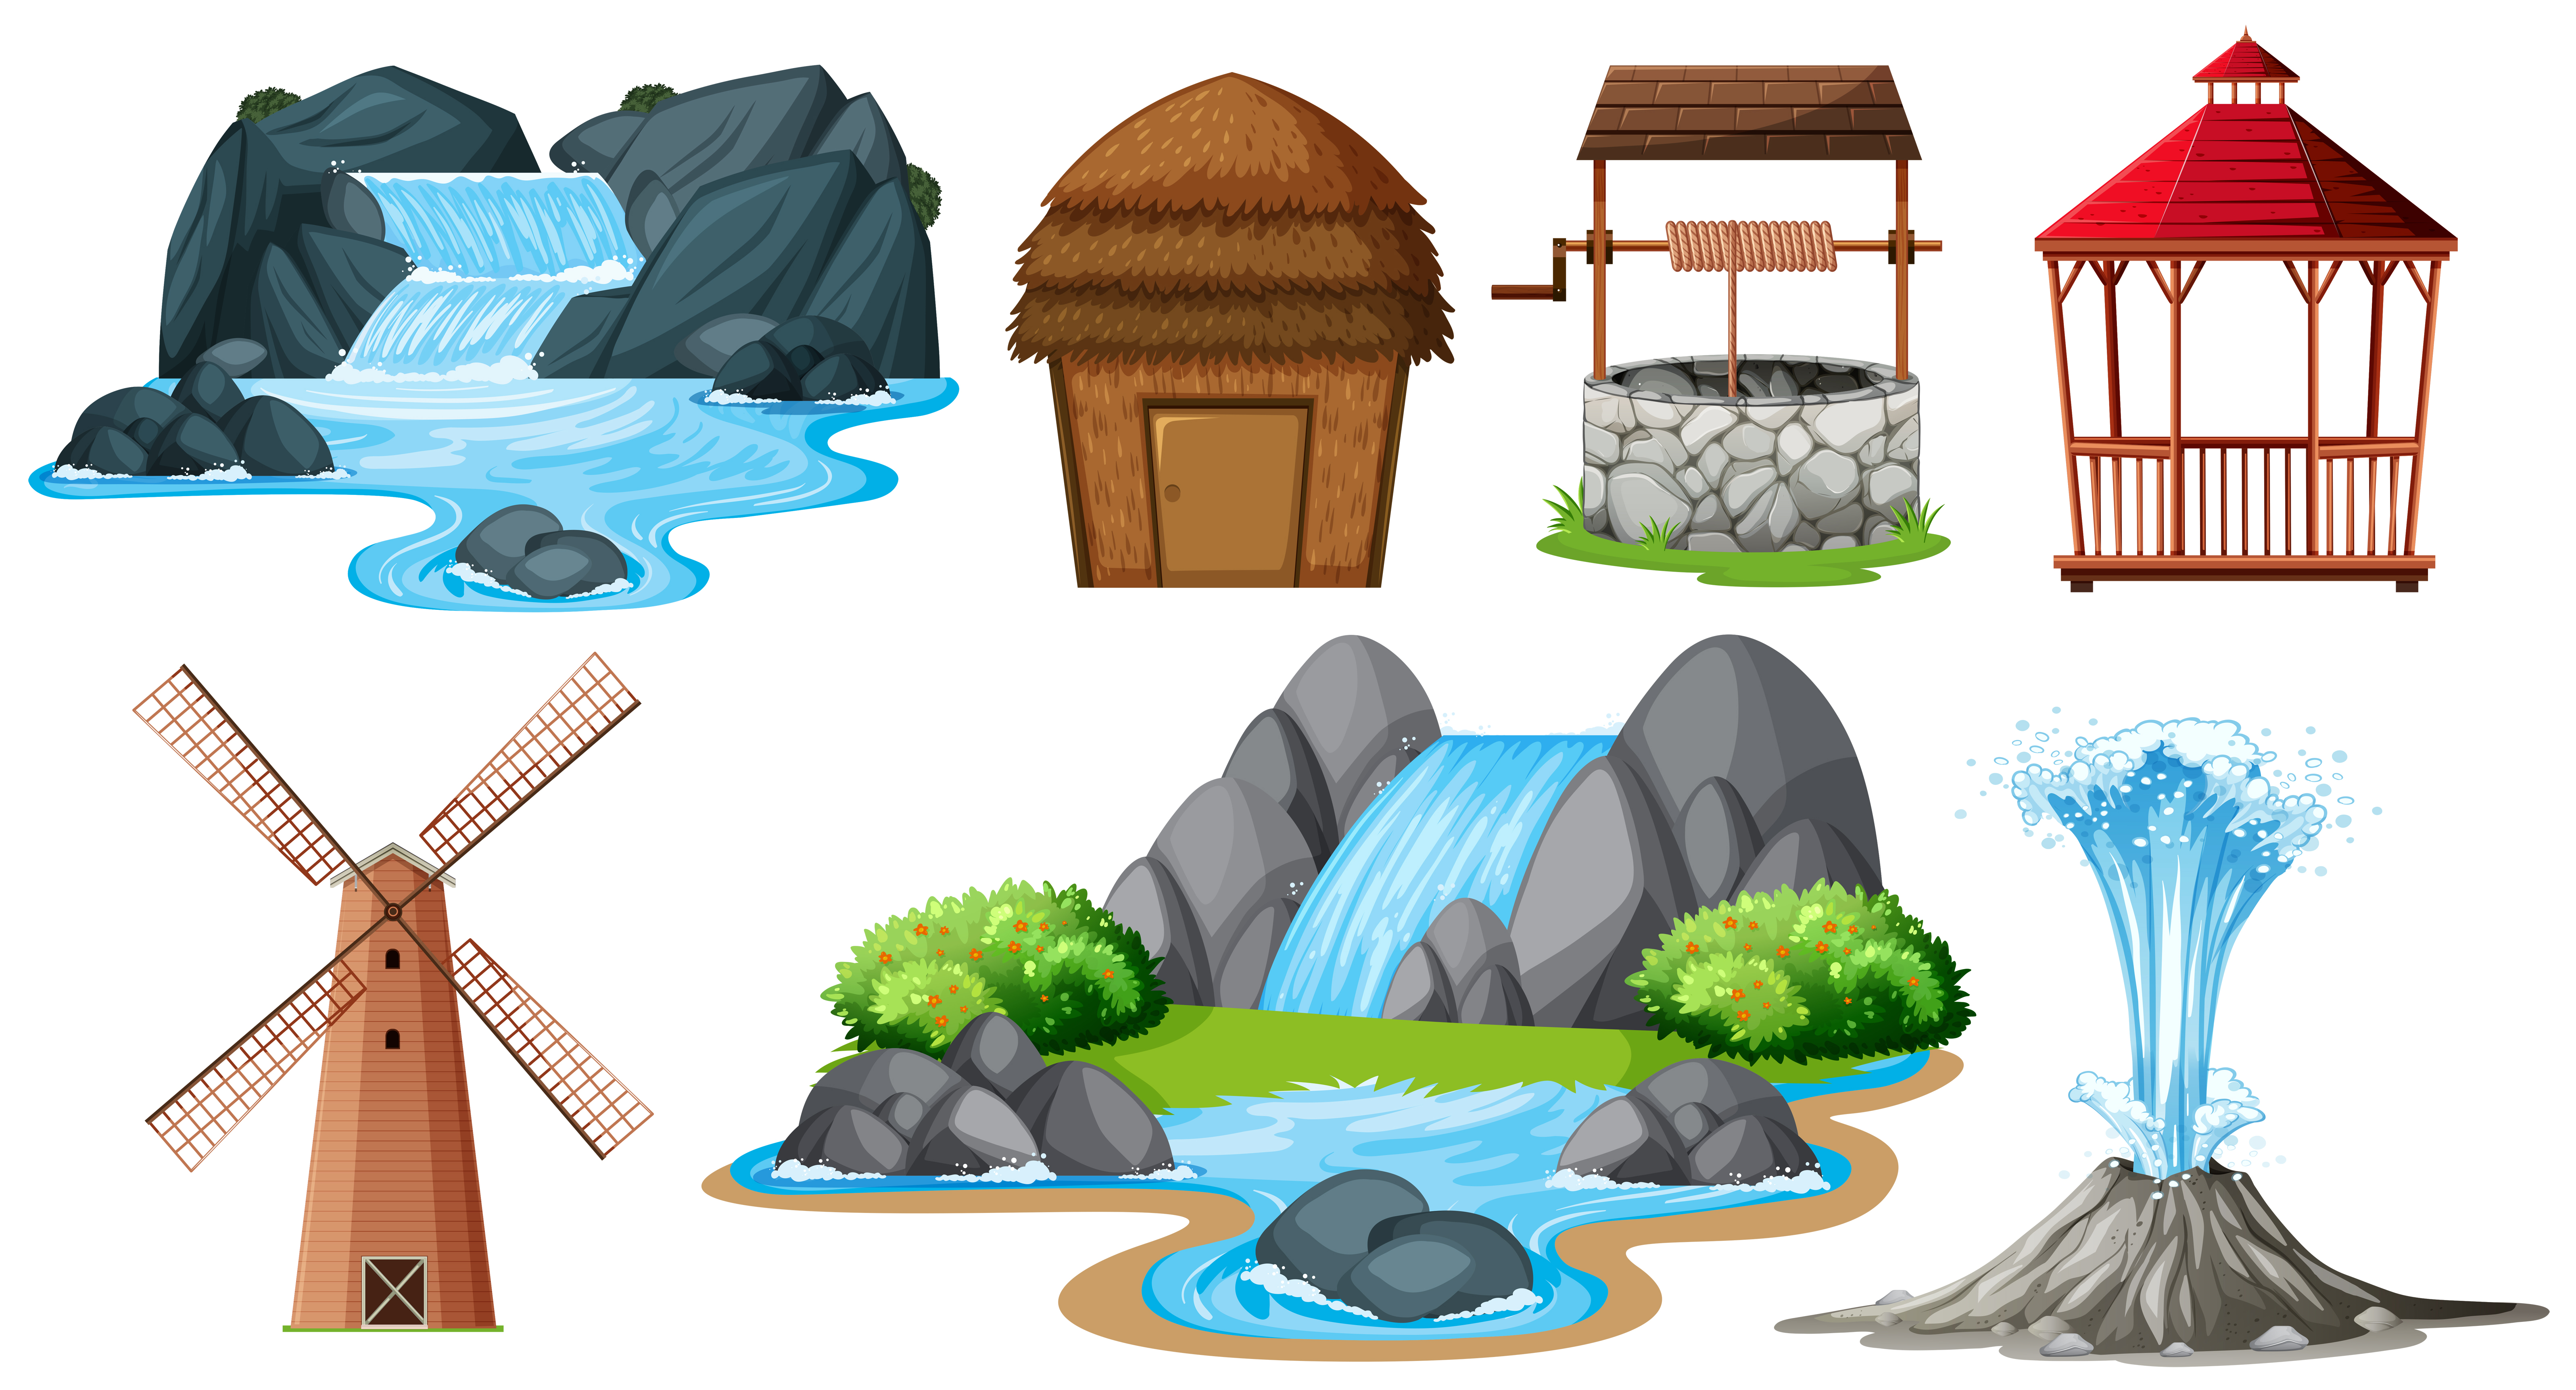 Free Pictures Of Objects, Download Free Clip Art, Free Clip Art on Clipart  Library